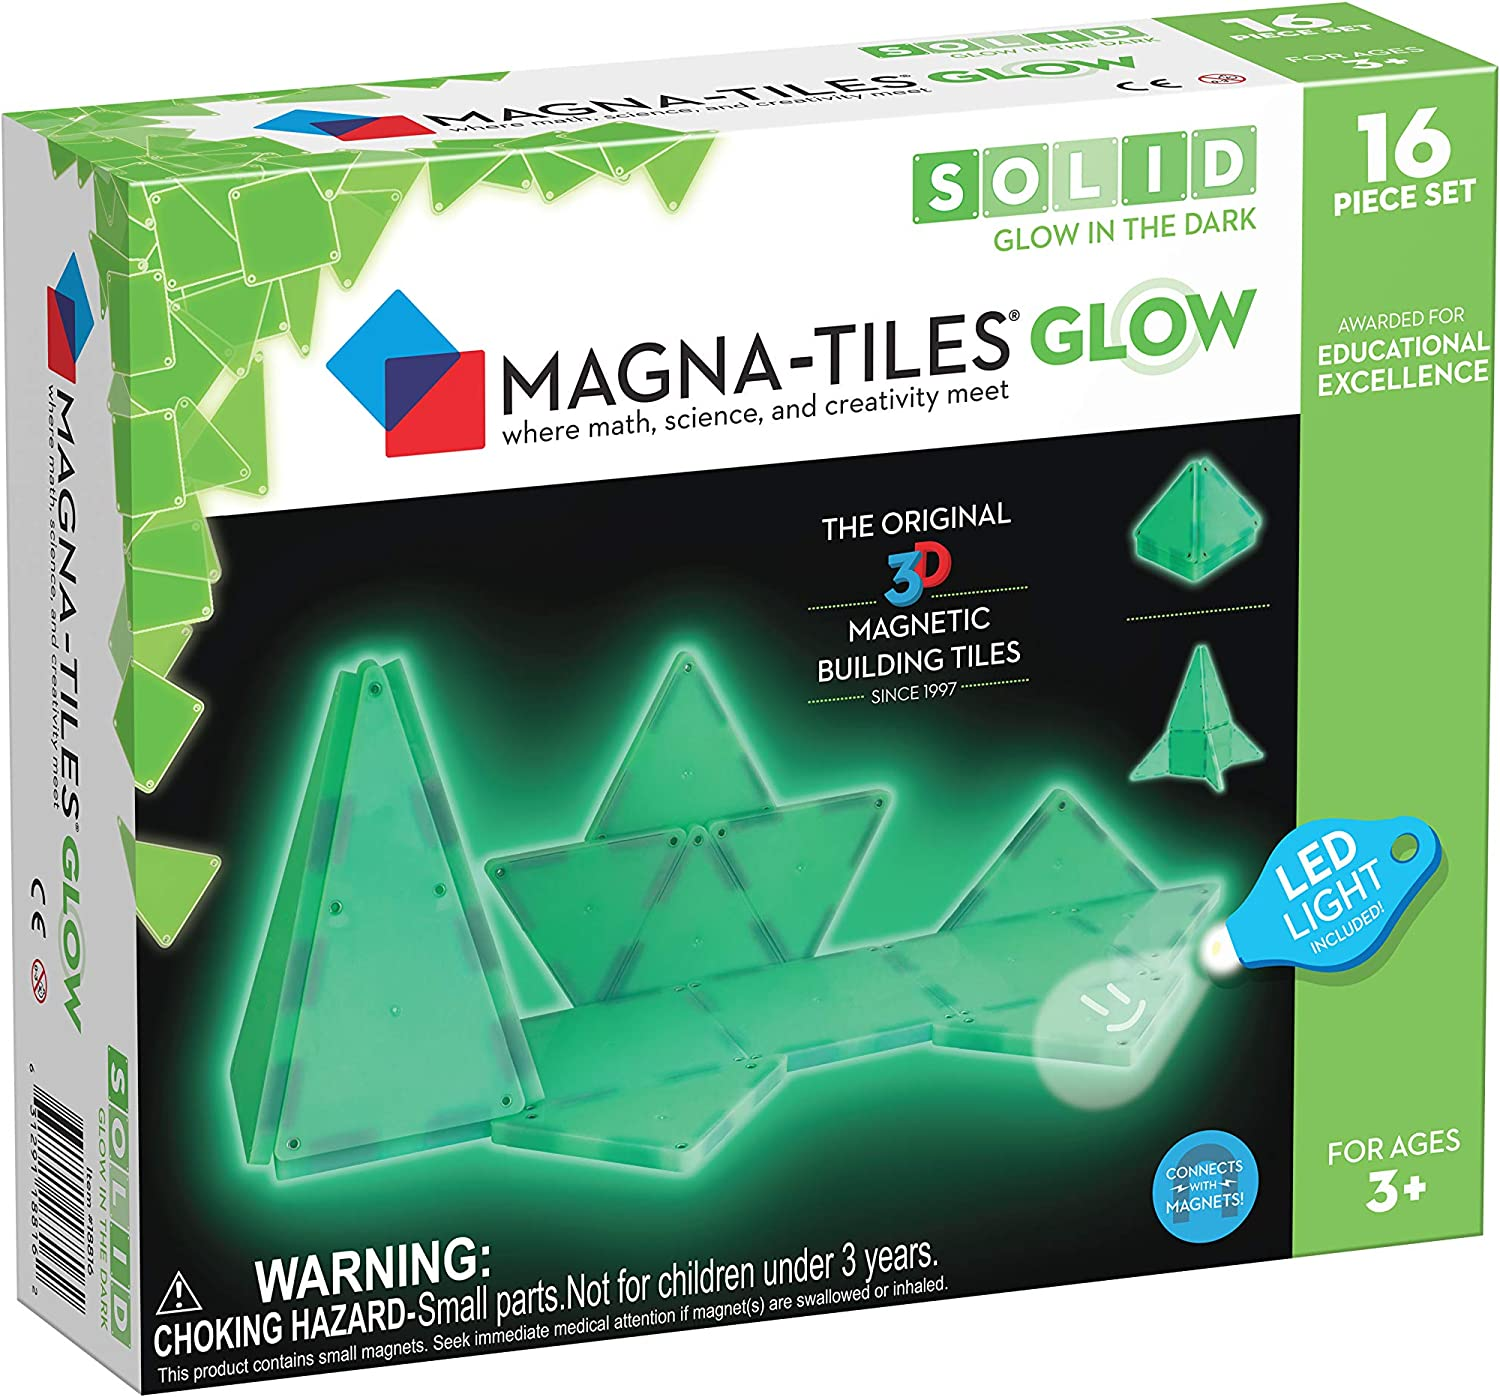 Glowing Tiles Set